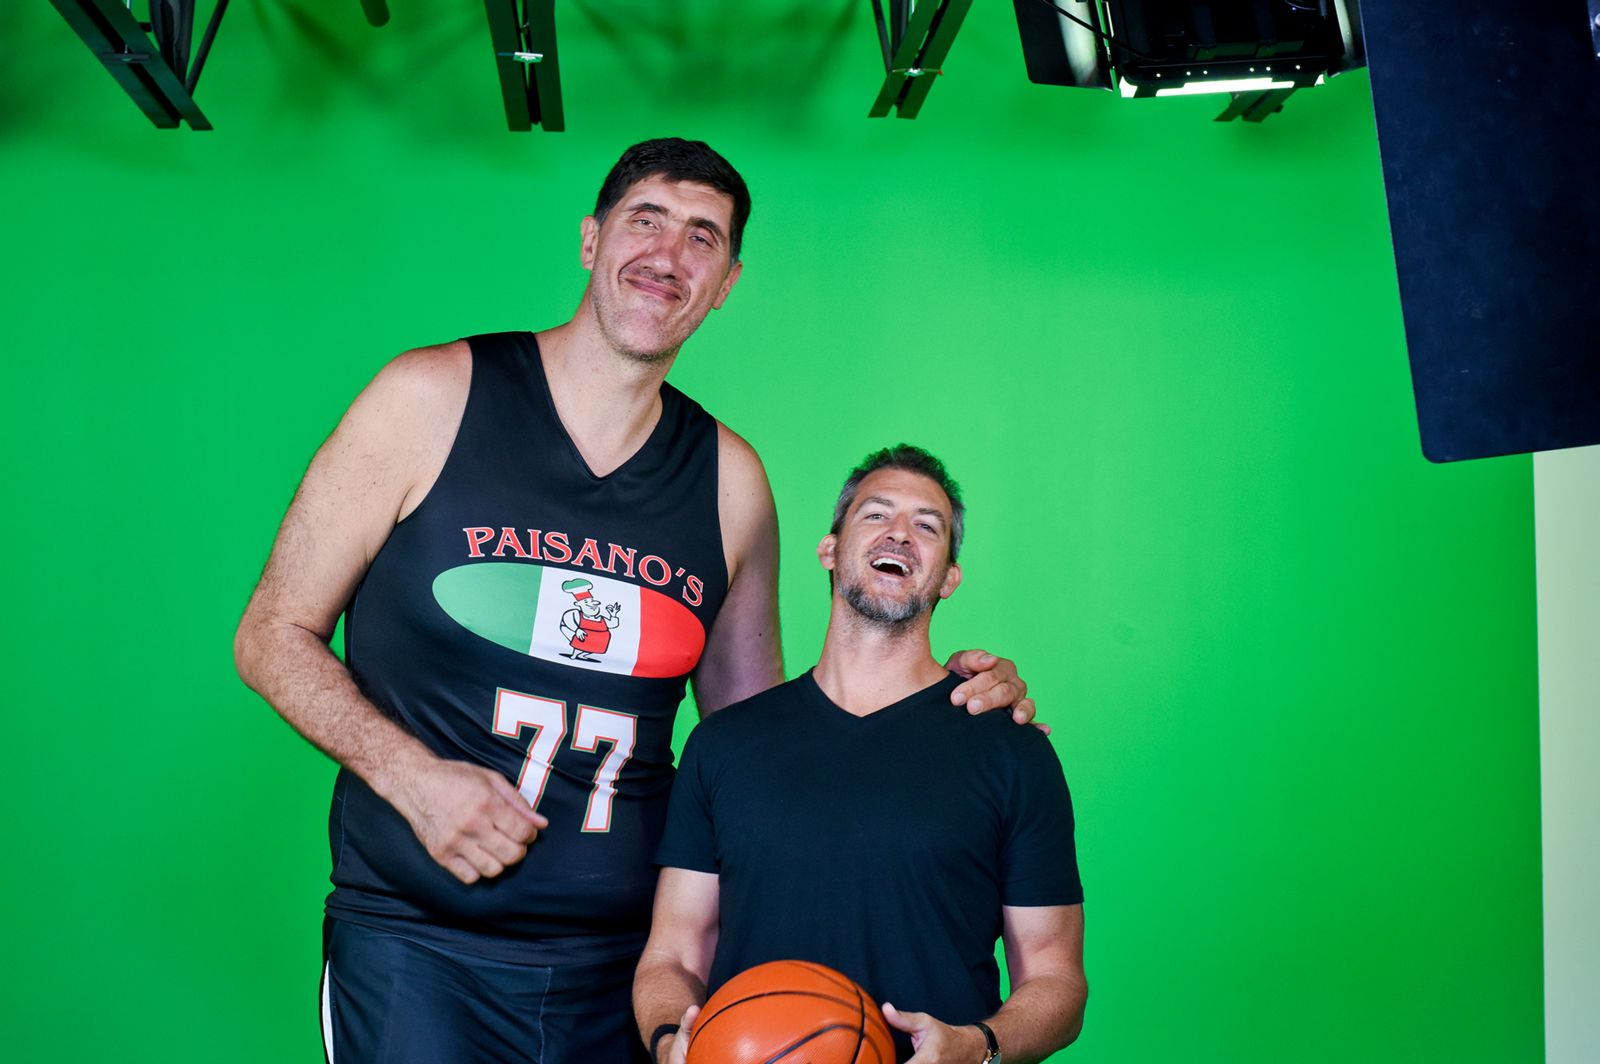 Muresan green screen